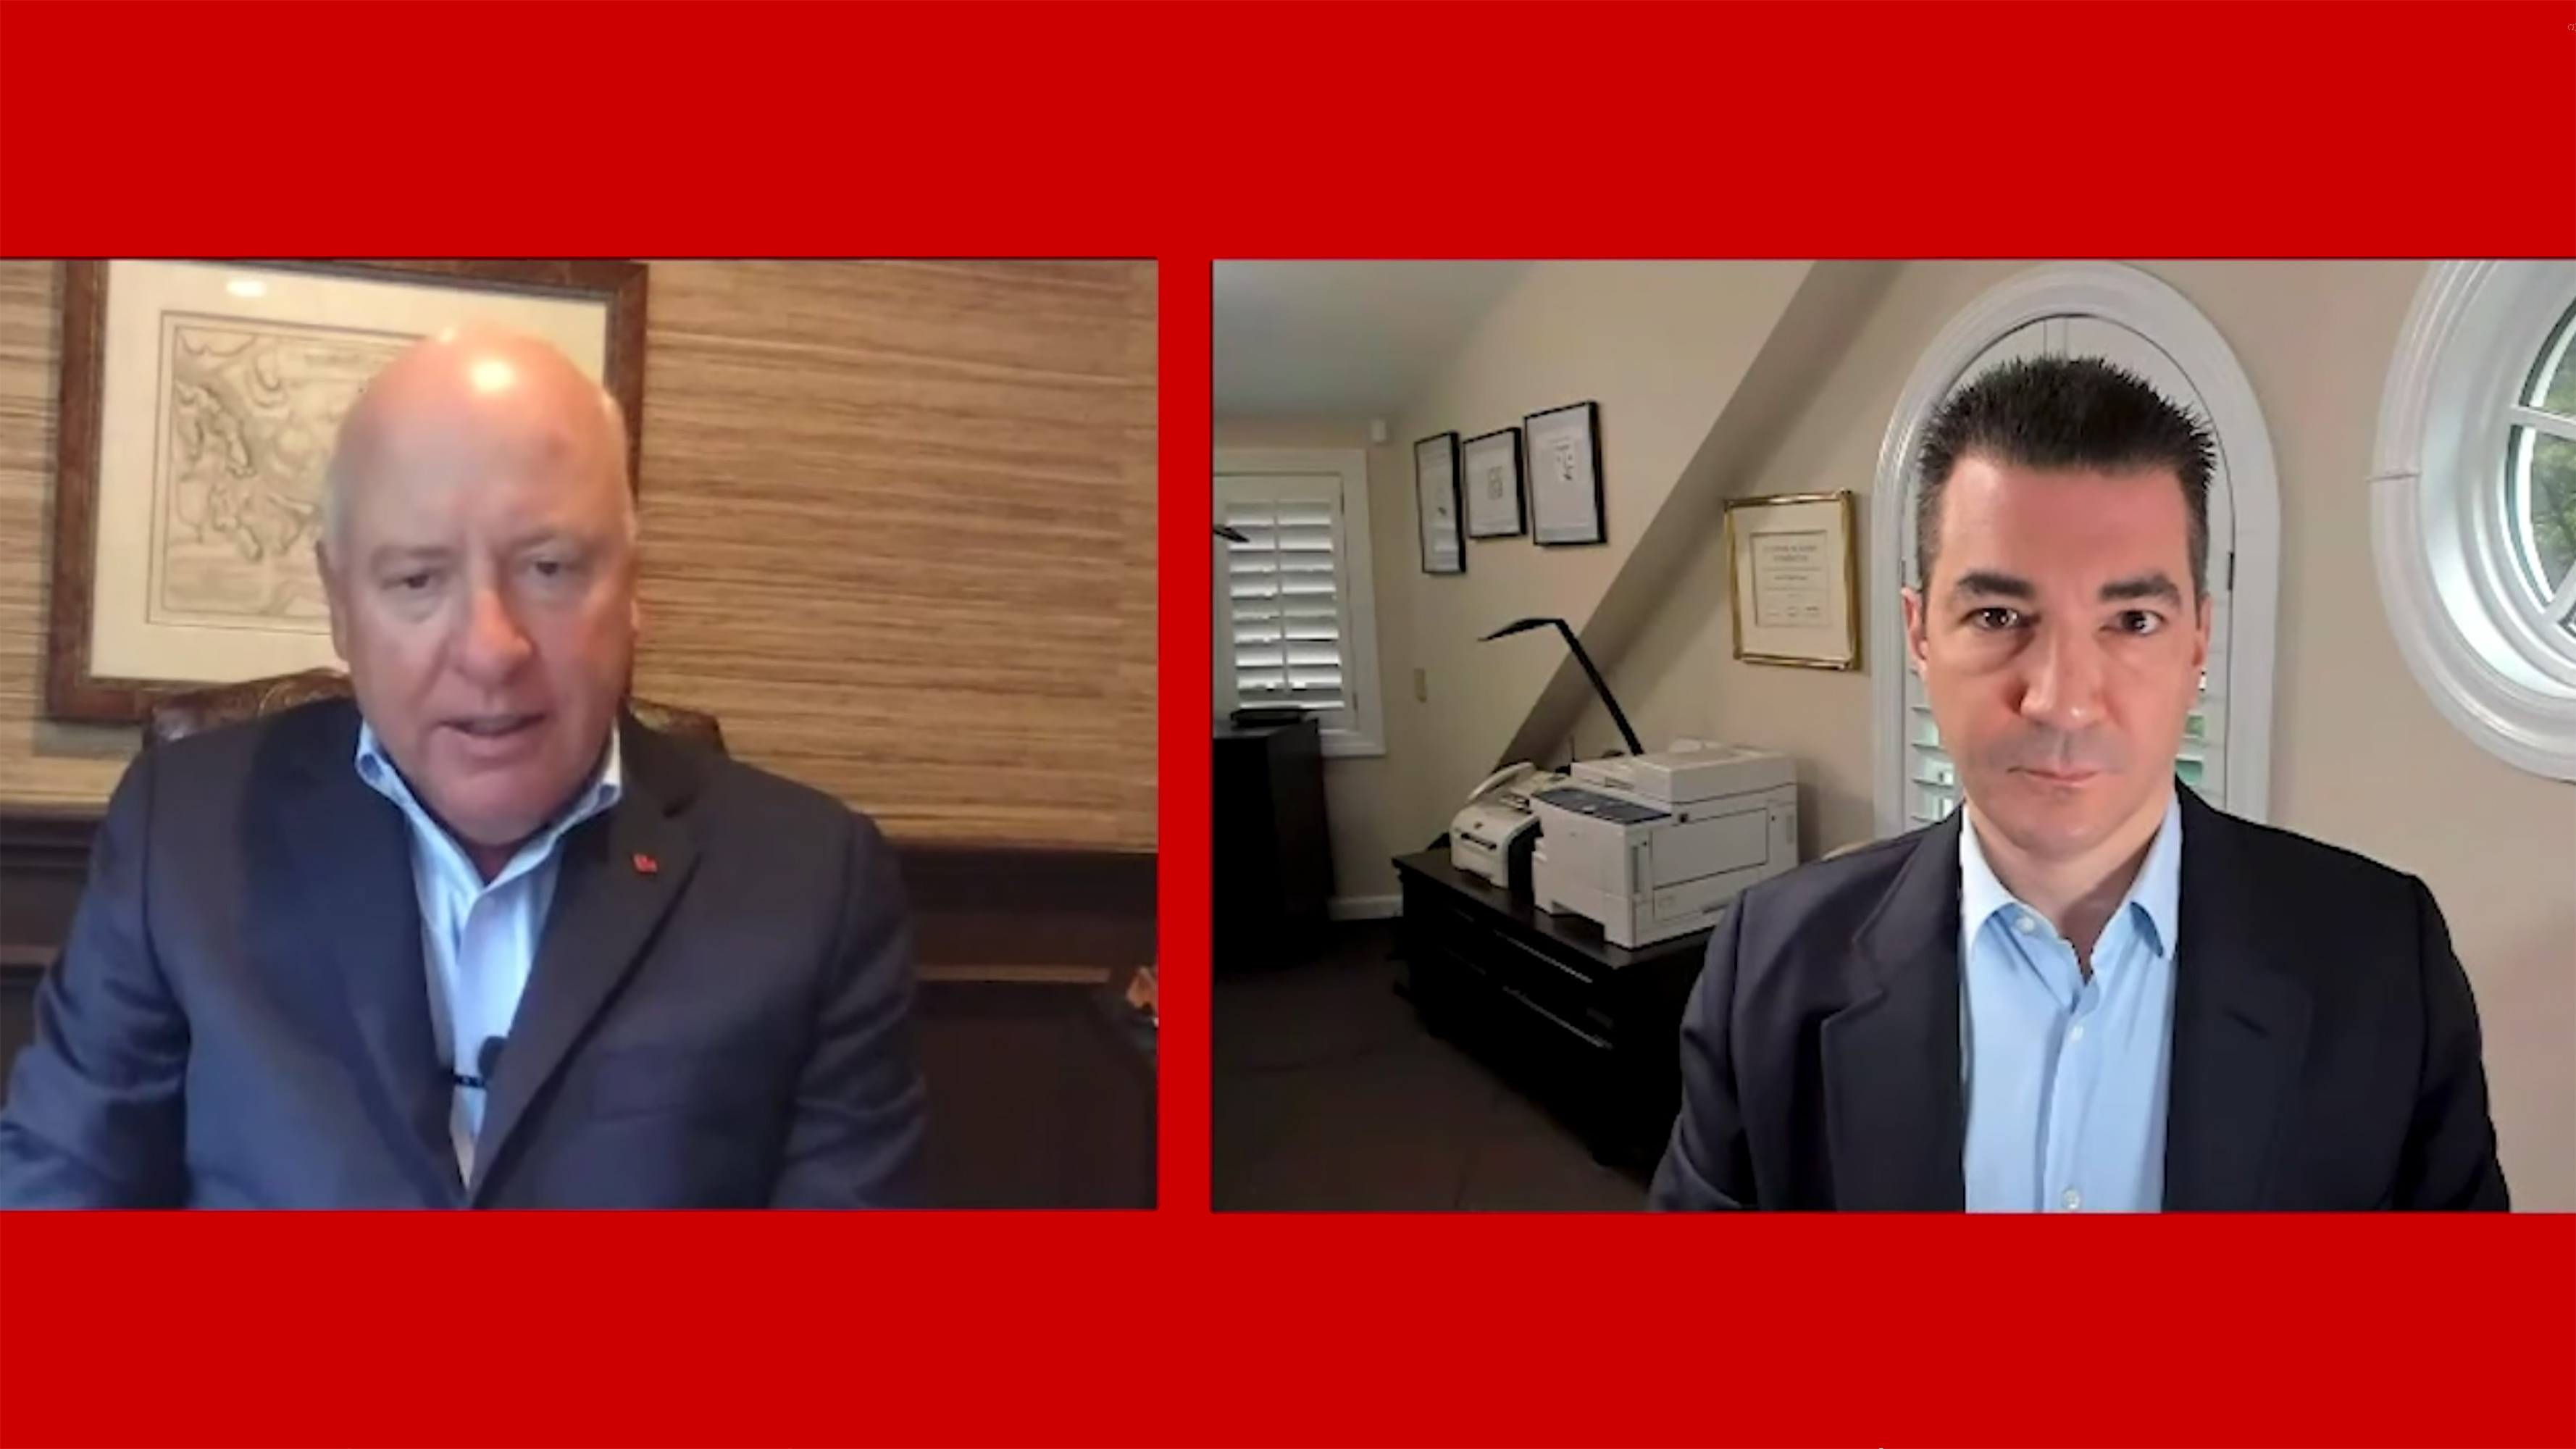 Tom Moriarty and Dr. Scott Gottlieb, on a video call together discussing the COVID-19 pandemic.